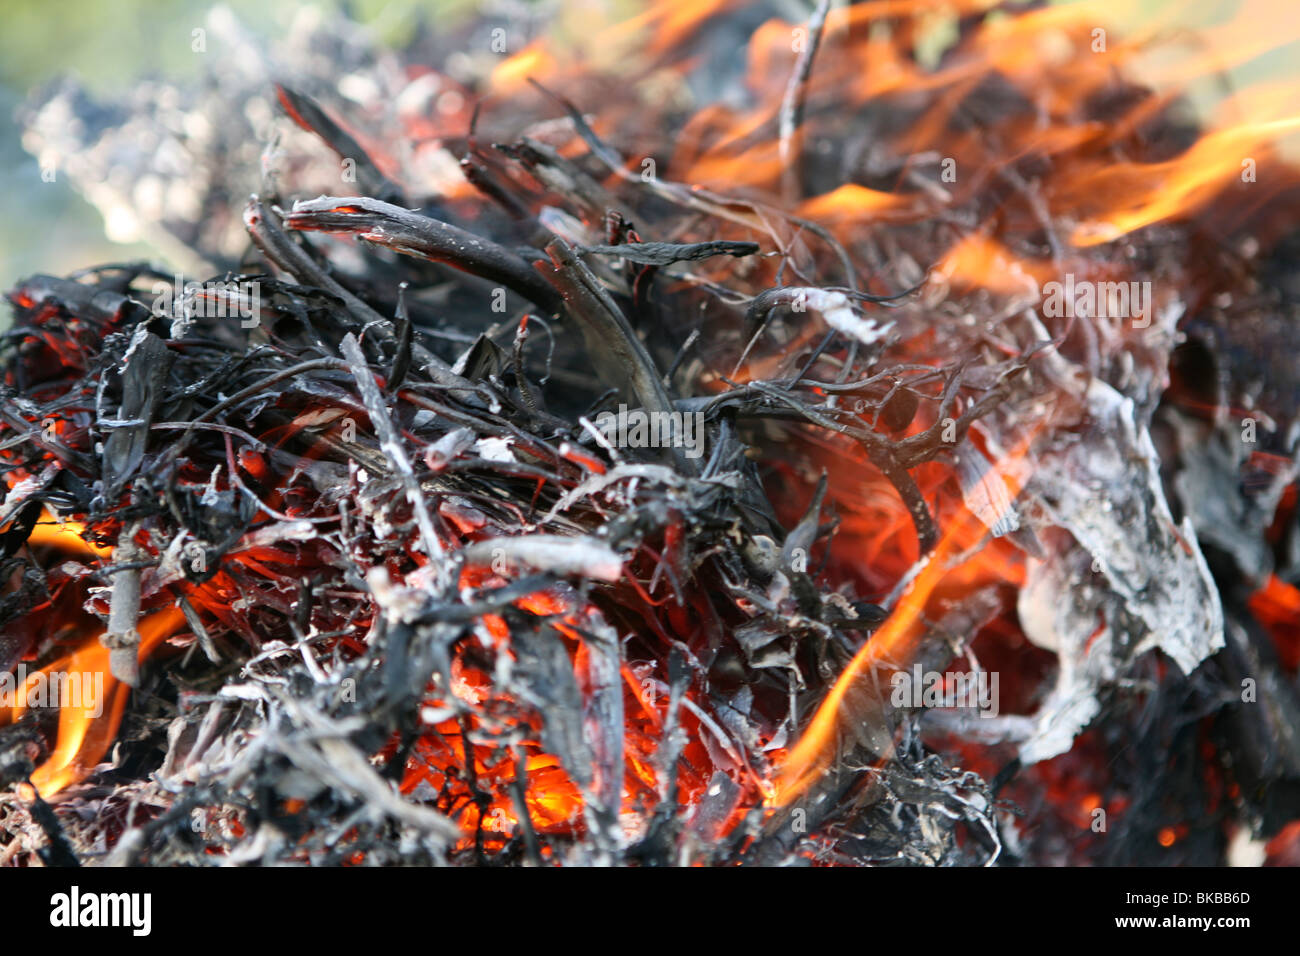 Close up of a garden bonfire - Stock Image